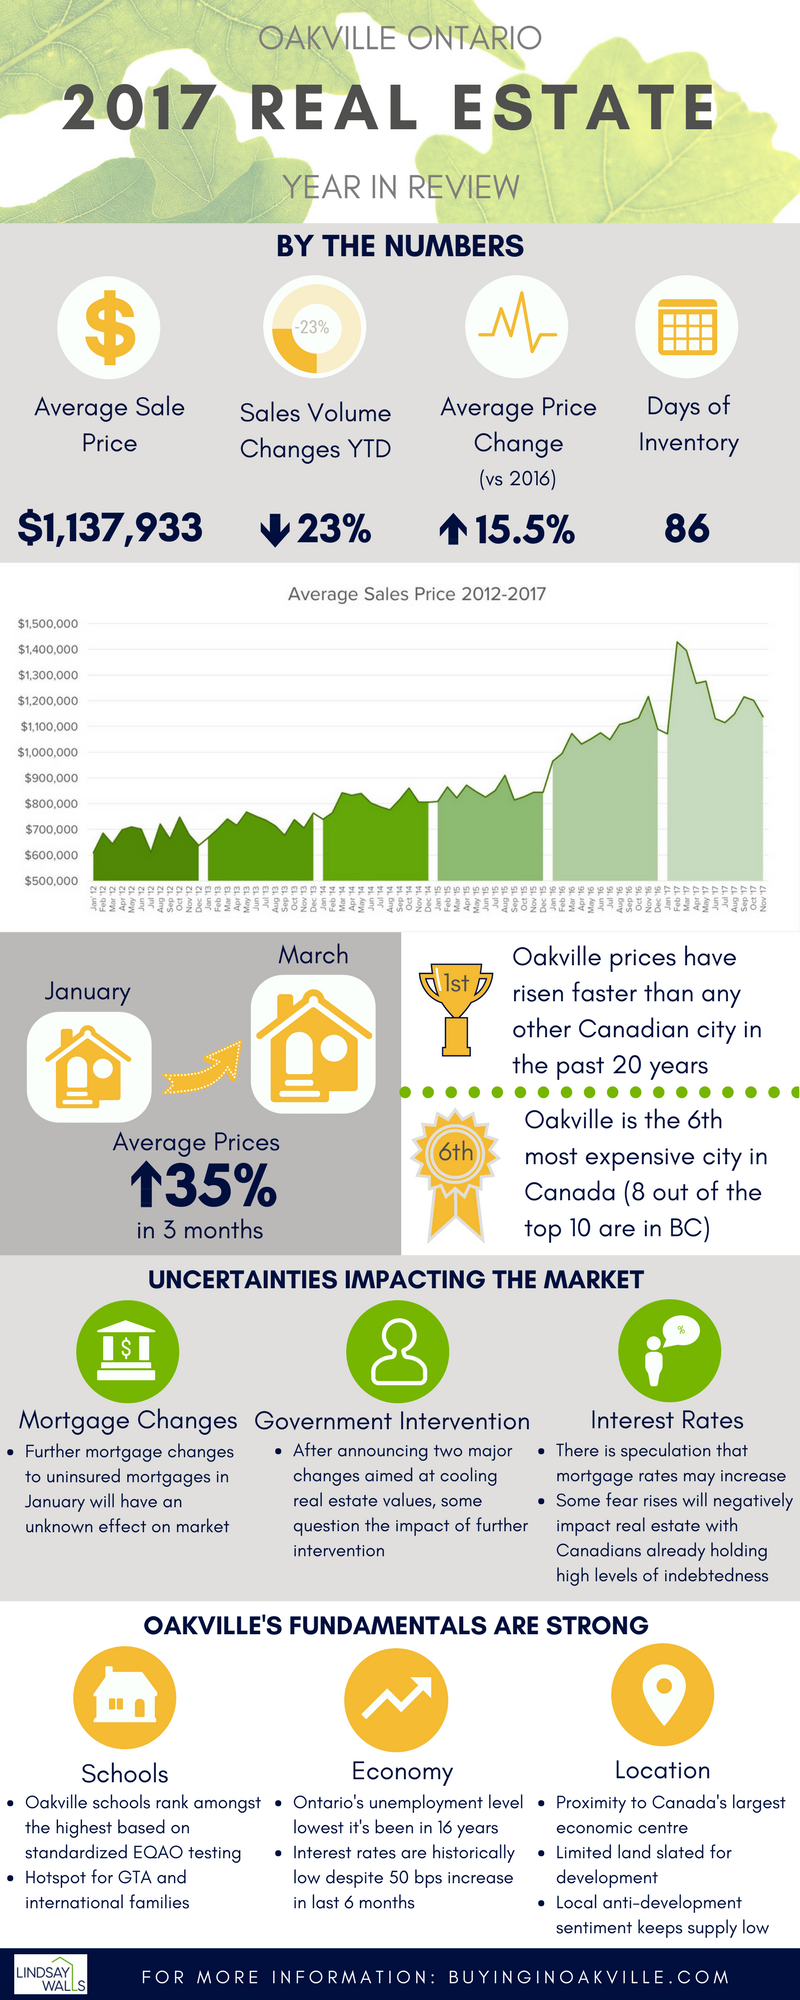 2017-oakville-real-estate-year-in-review